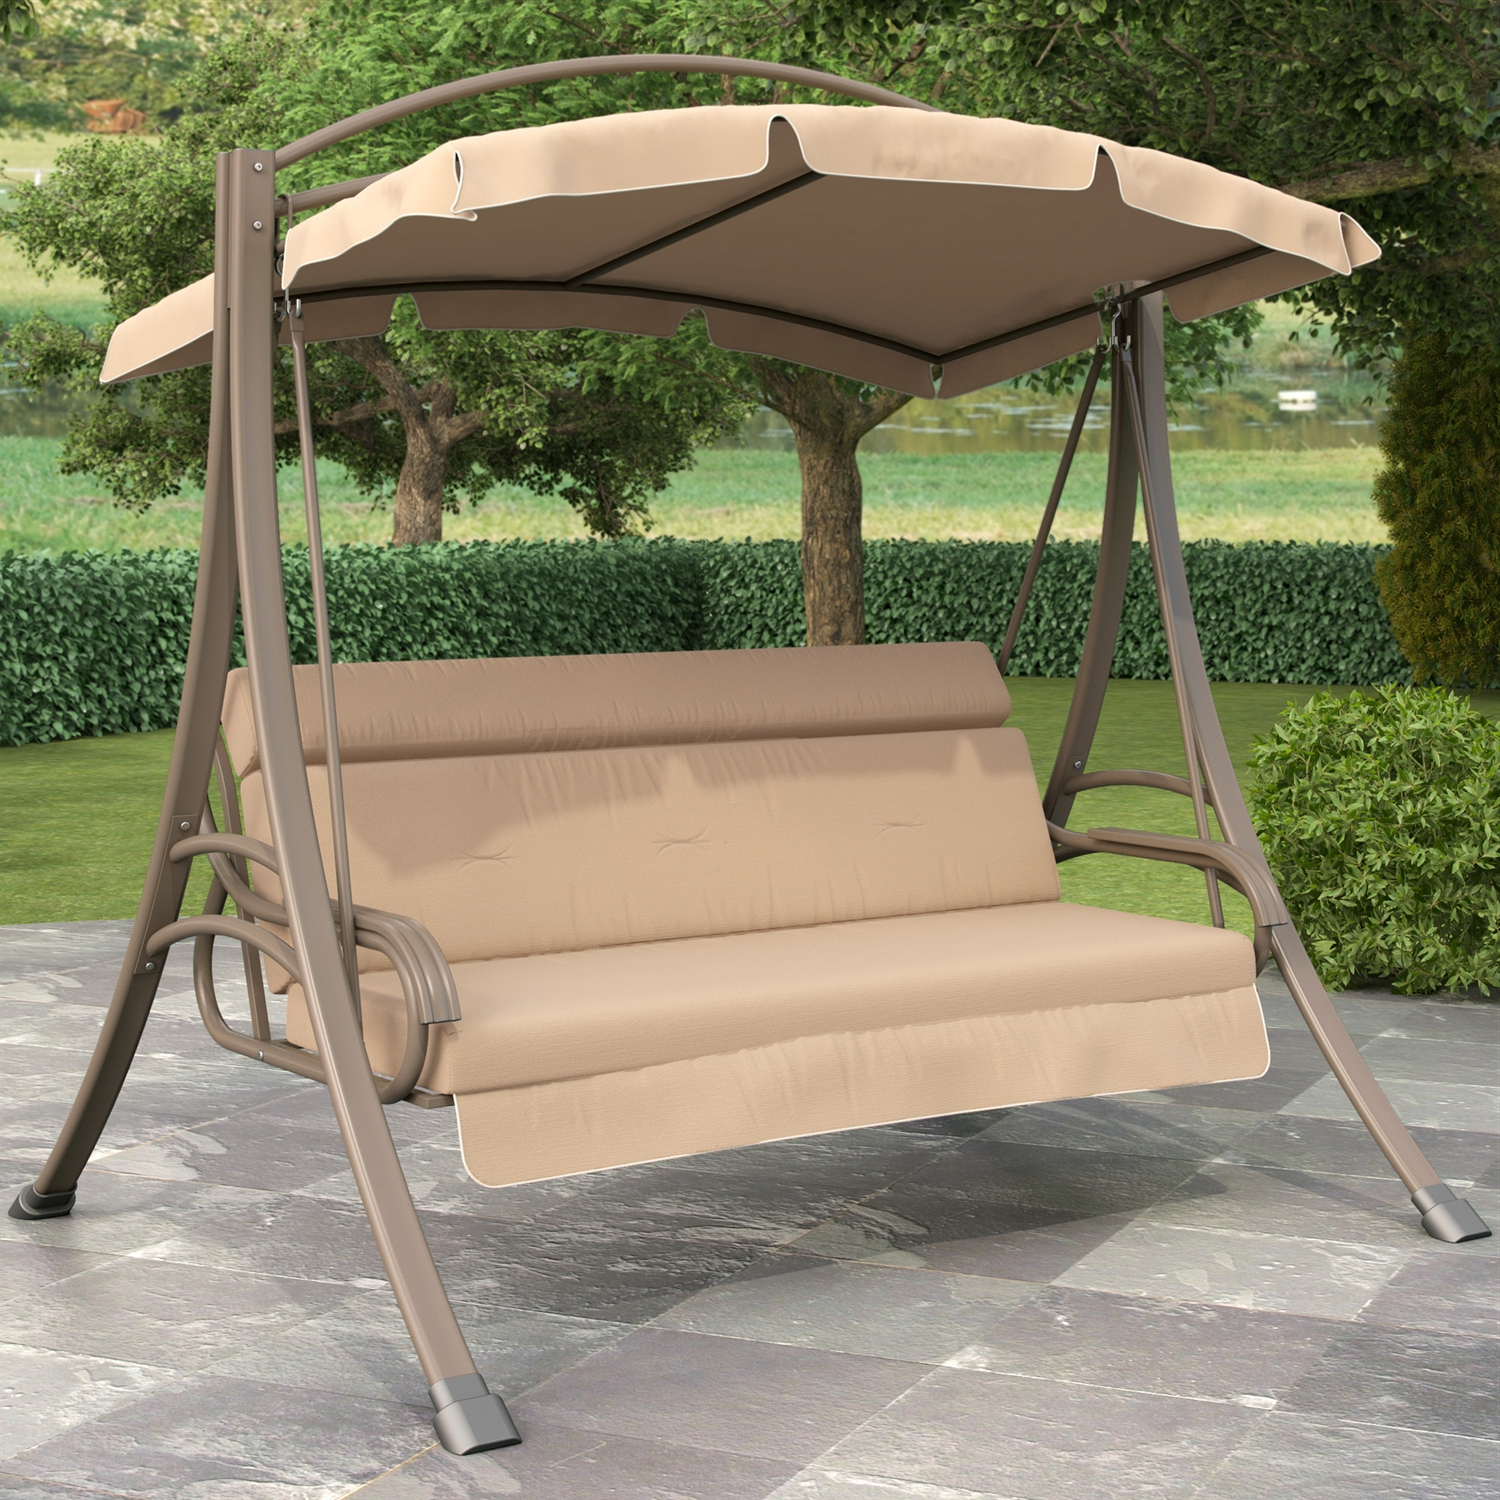 3 Person Outdoor Porch Swing With Canopy In Beige Tan Brown For Famous Porch Swings With Canopy (Gallery 14 of 25)